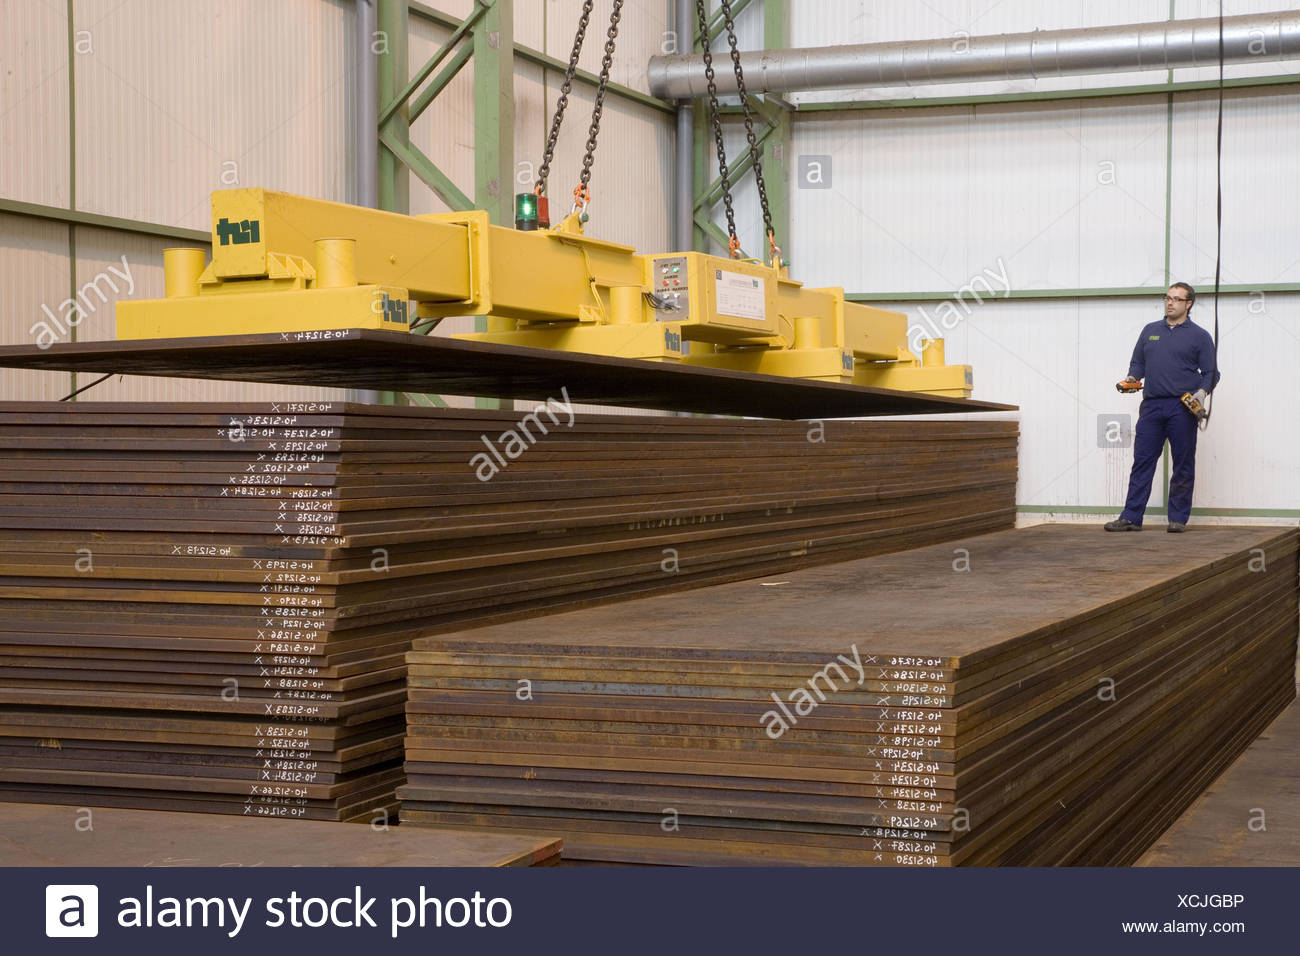 Permanent-electro magnetic telescopic beams for single sheet handling - Stock Image